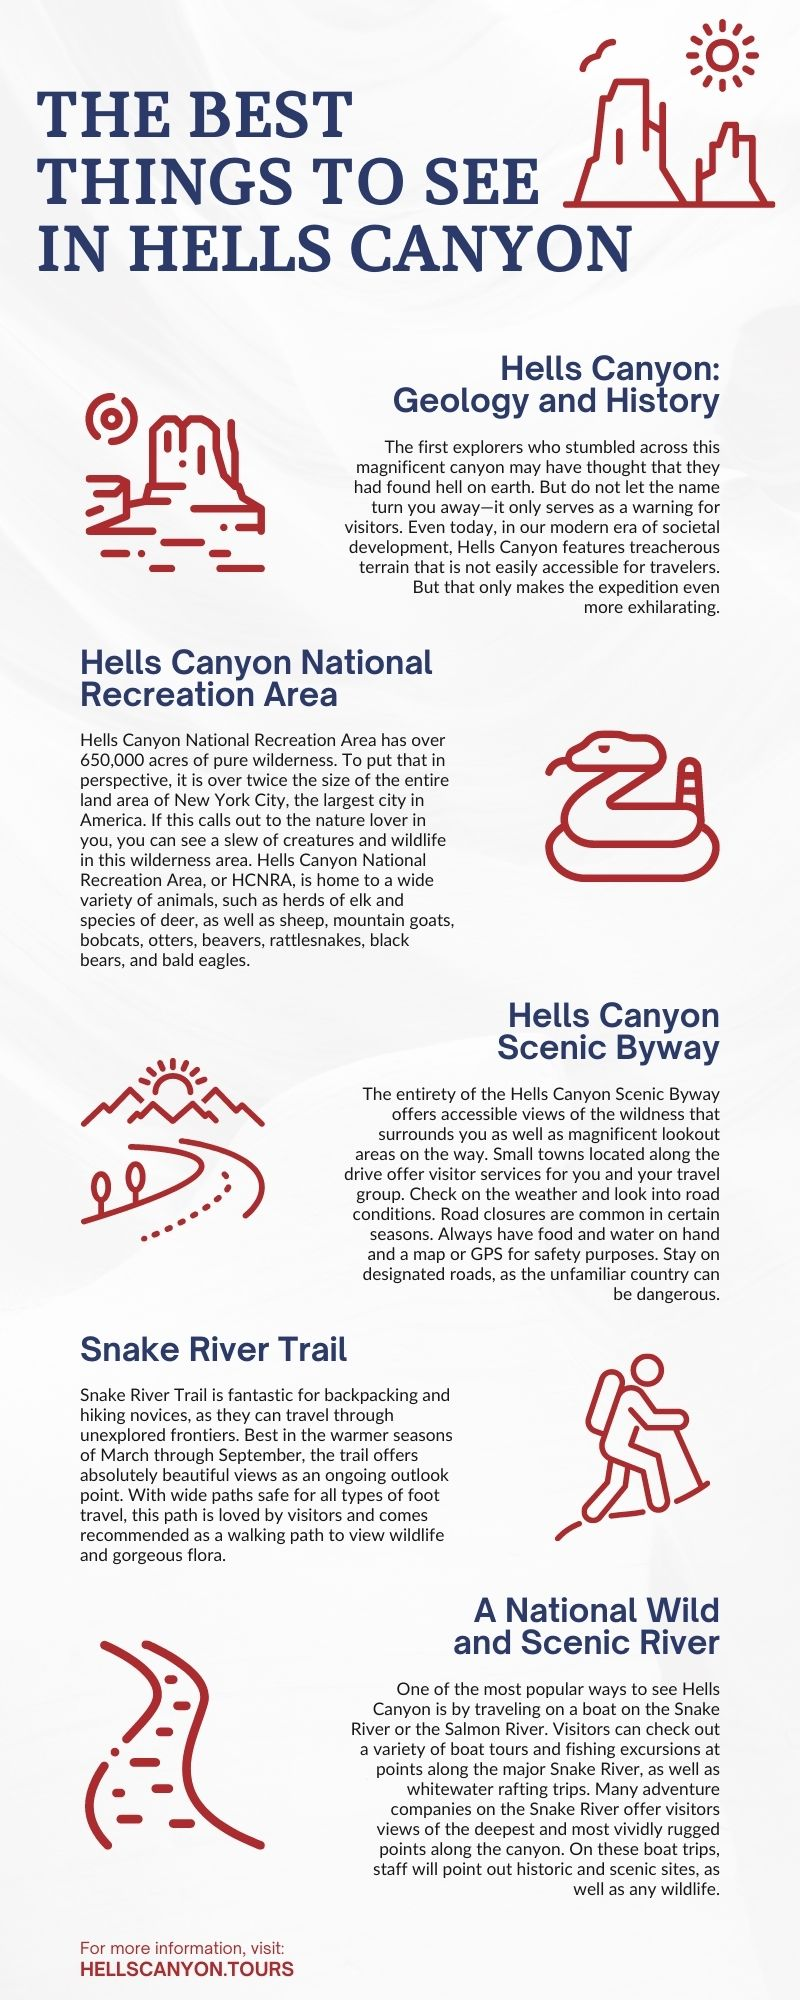 The Best Things To See in Hells Canyon